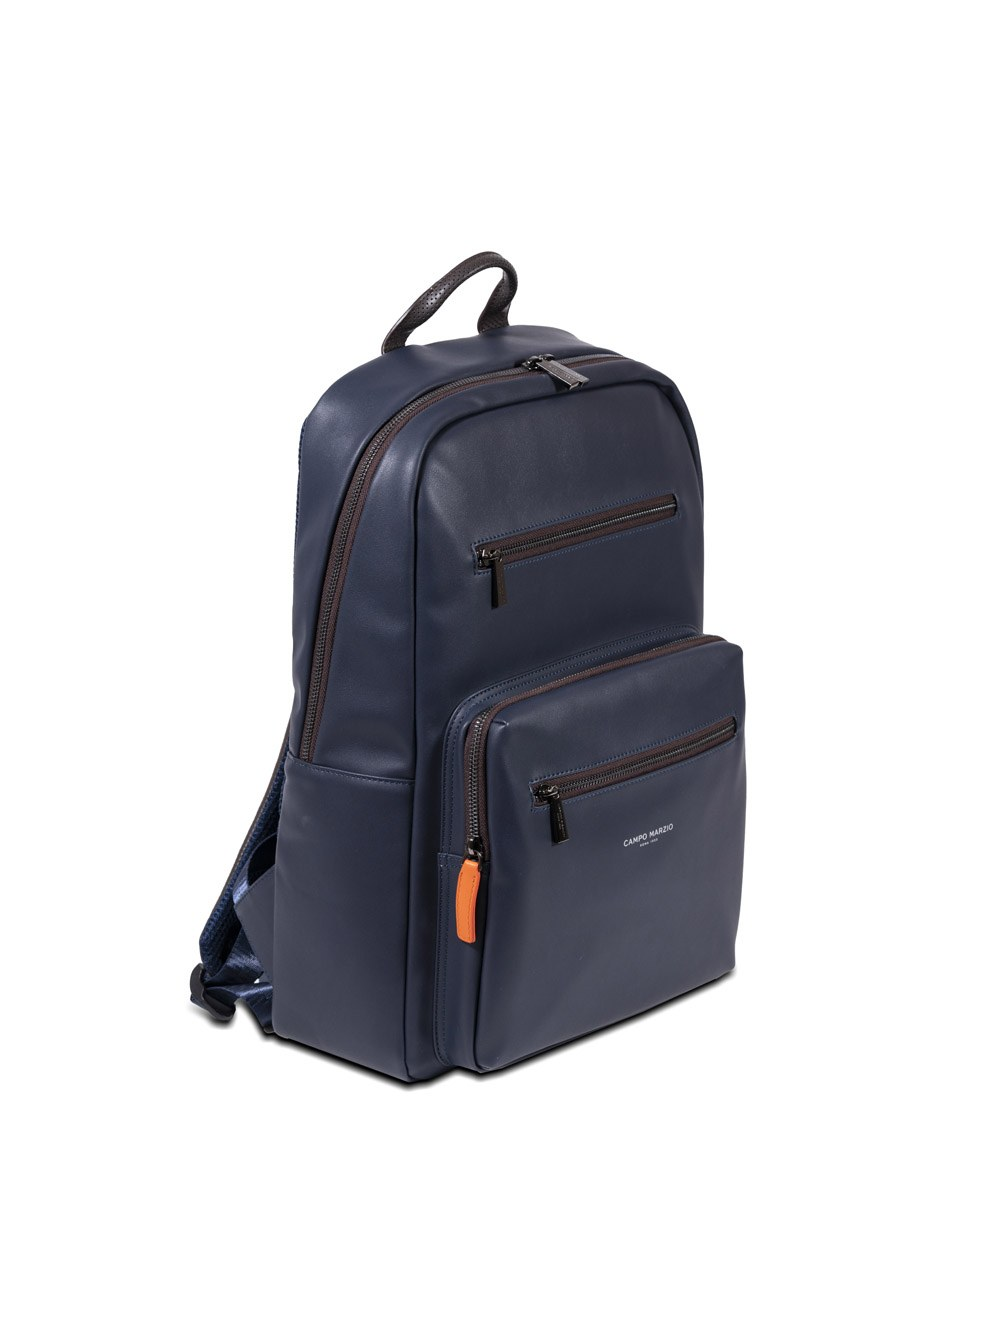 Backpack Maxi F43 - Ocean Blue